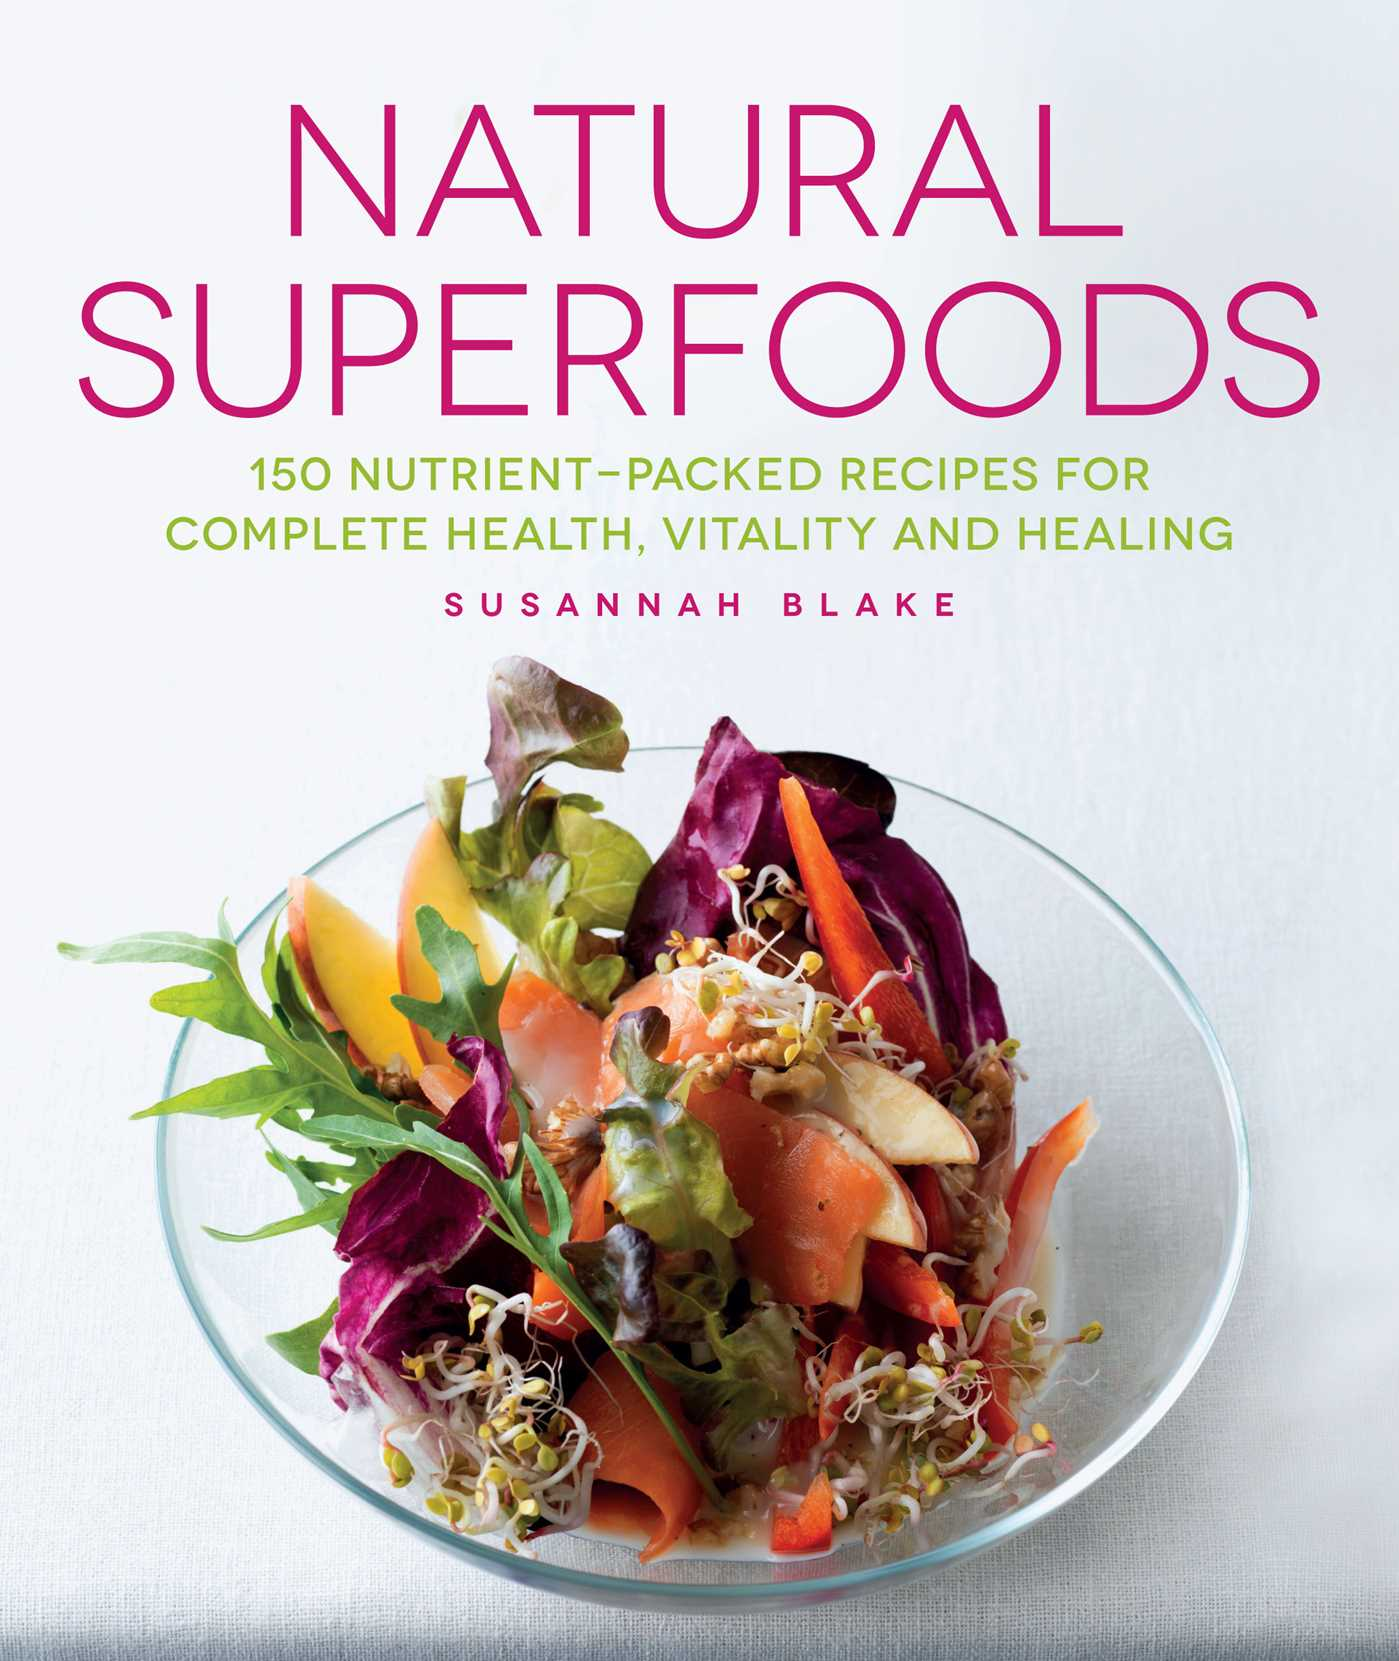 Natural superfoods book by susannah blake official publisher book cover image jpg natural superfoods forumfinder Image collections